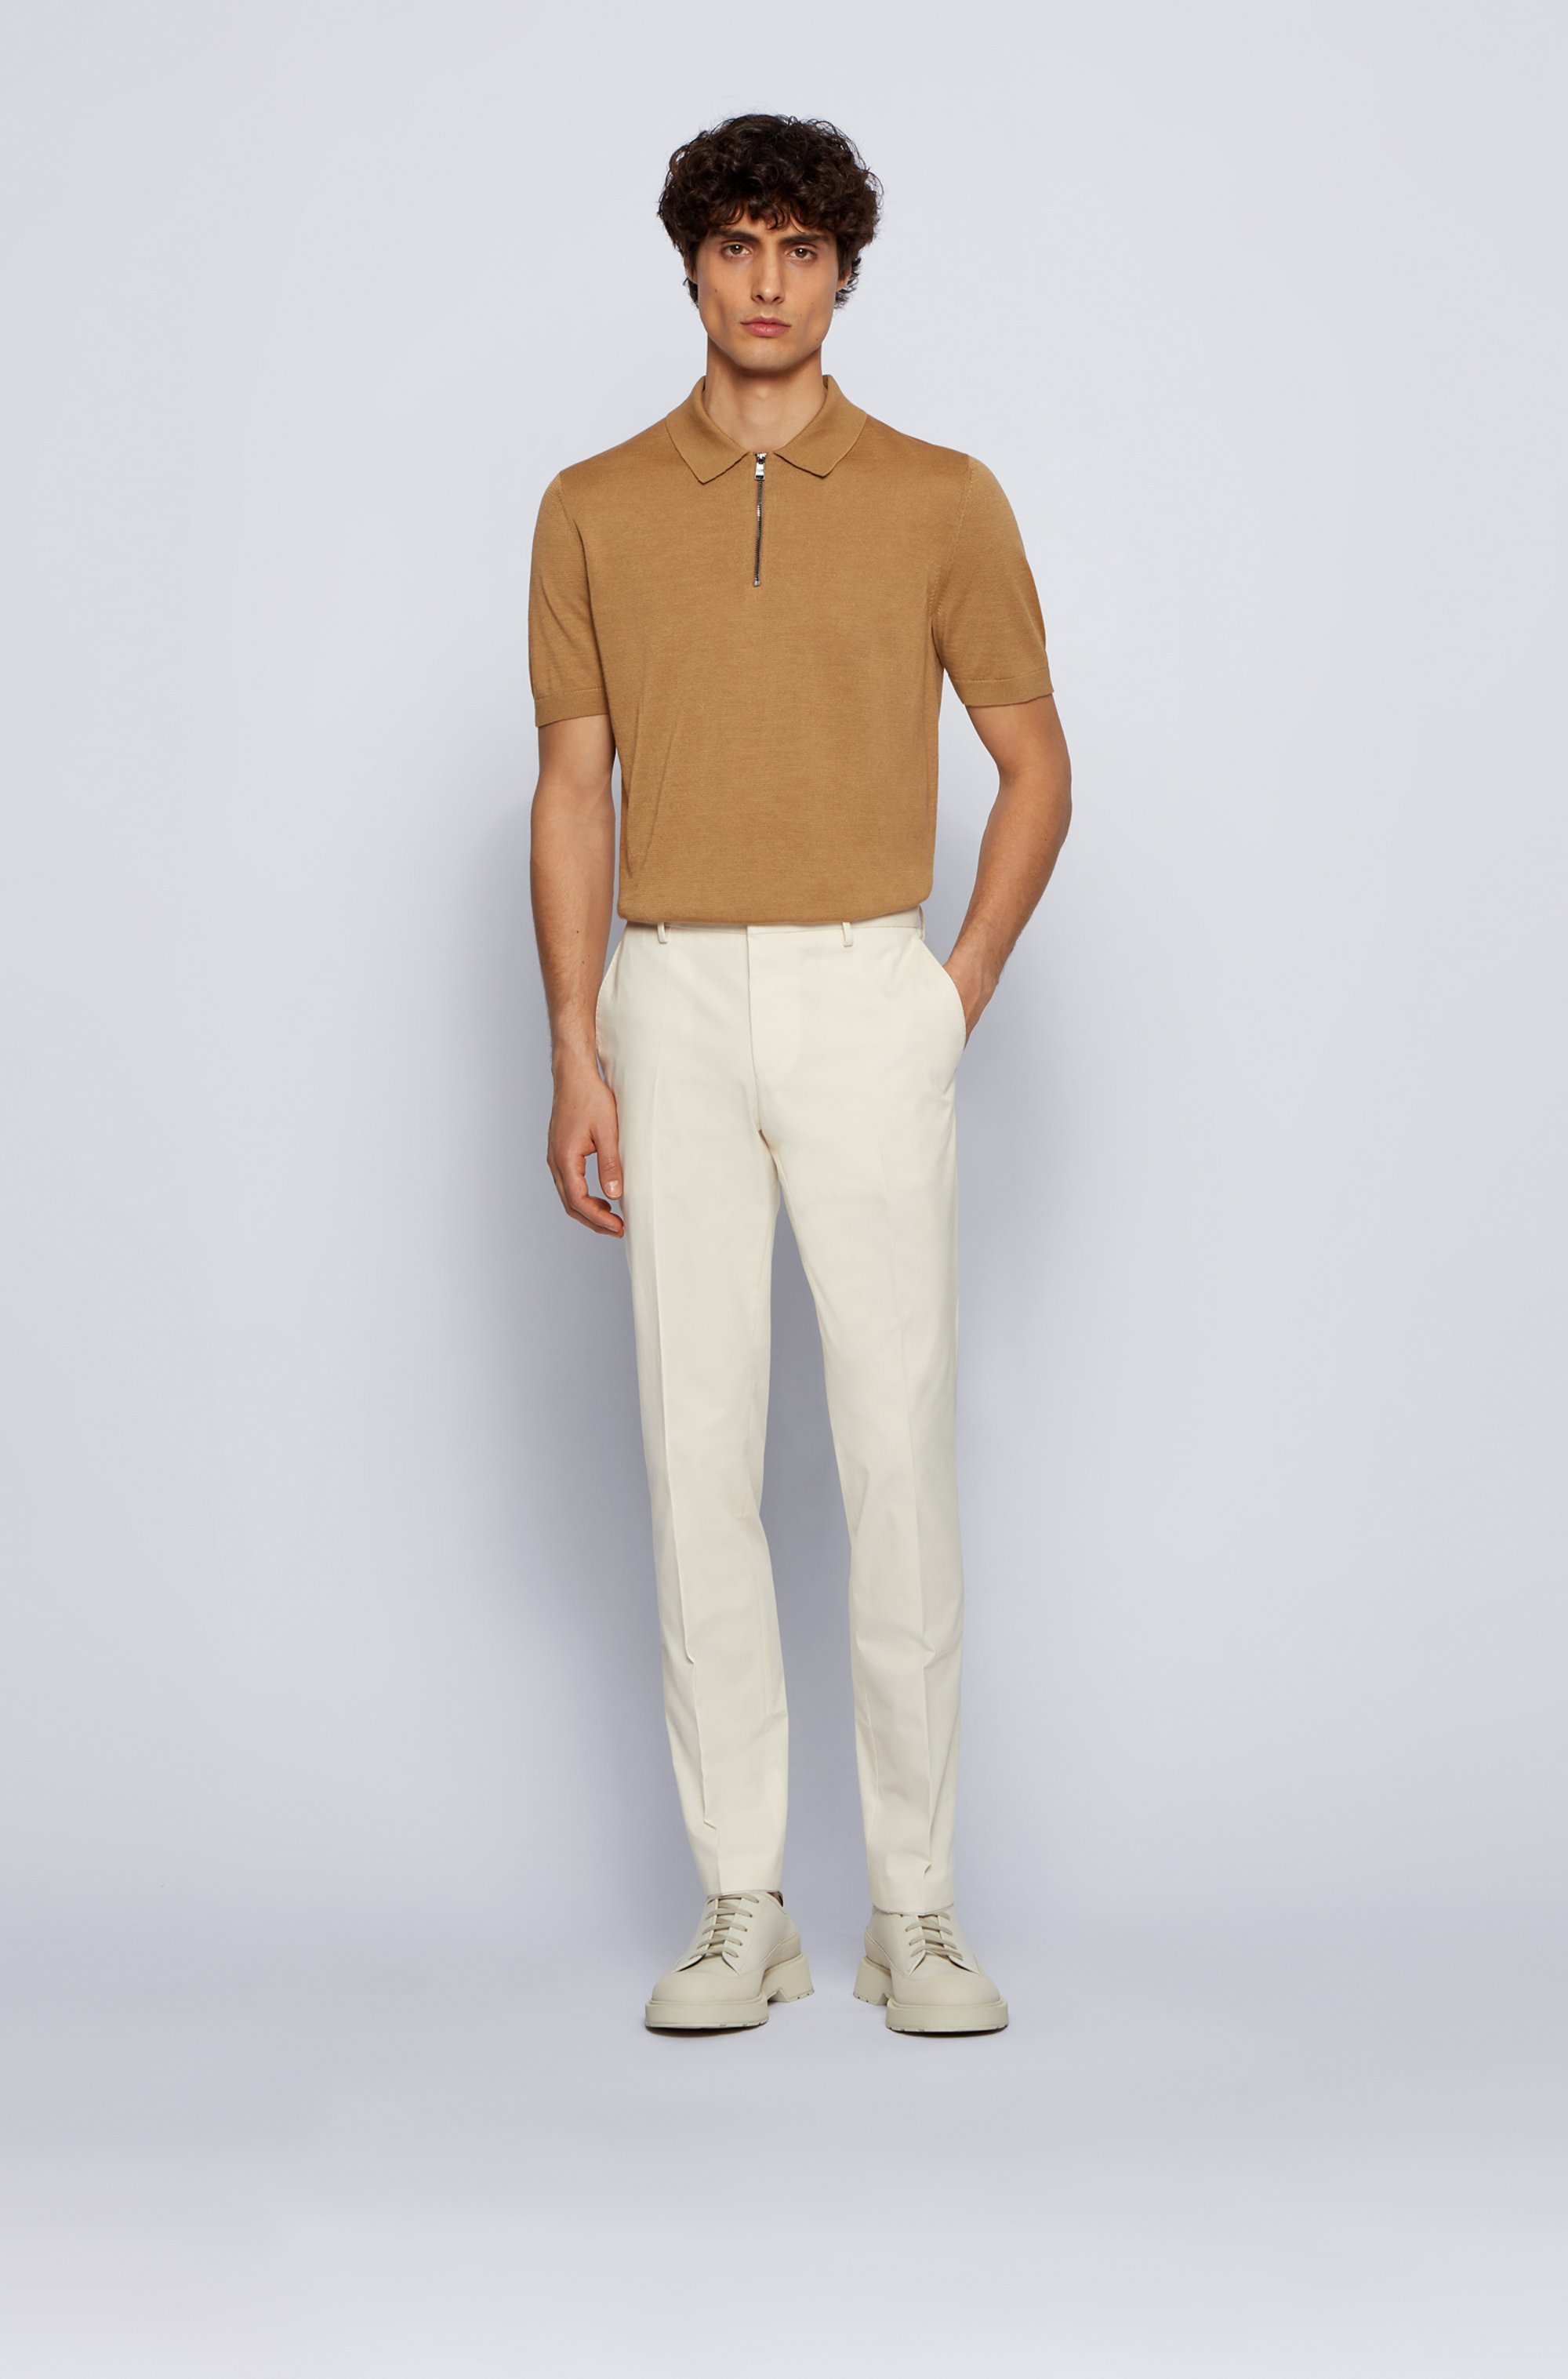 Short-sleeved polo sweater with zipped neck